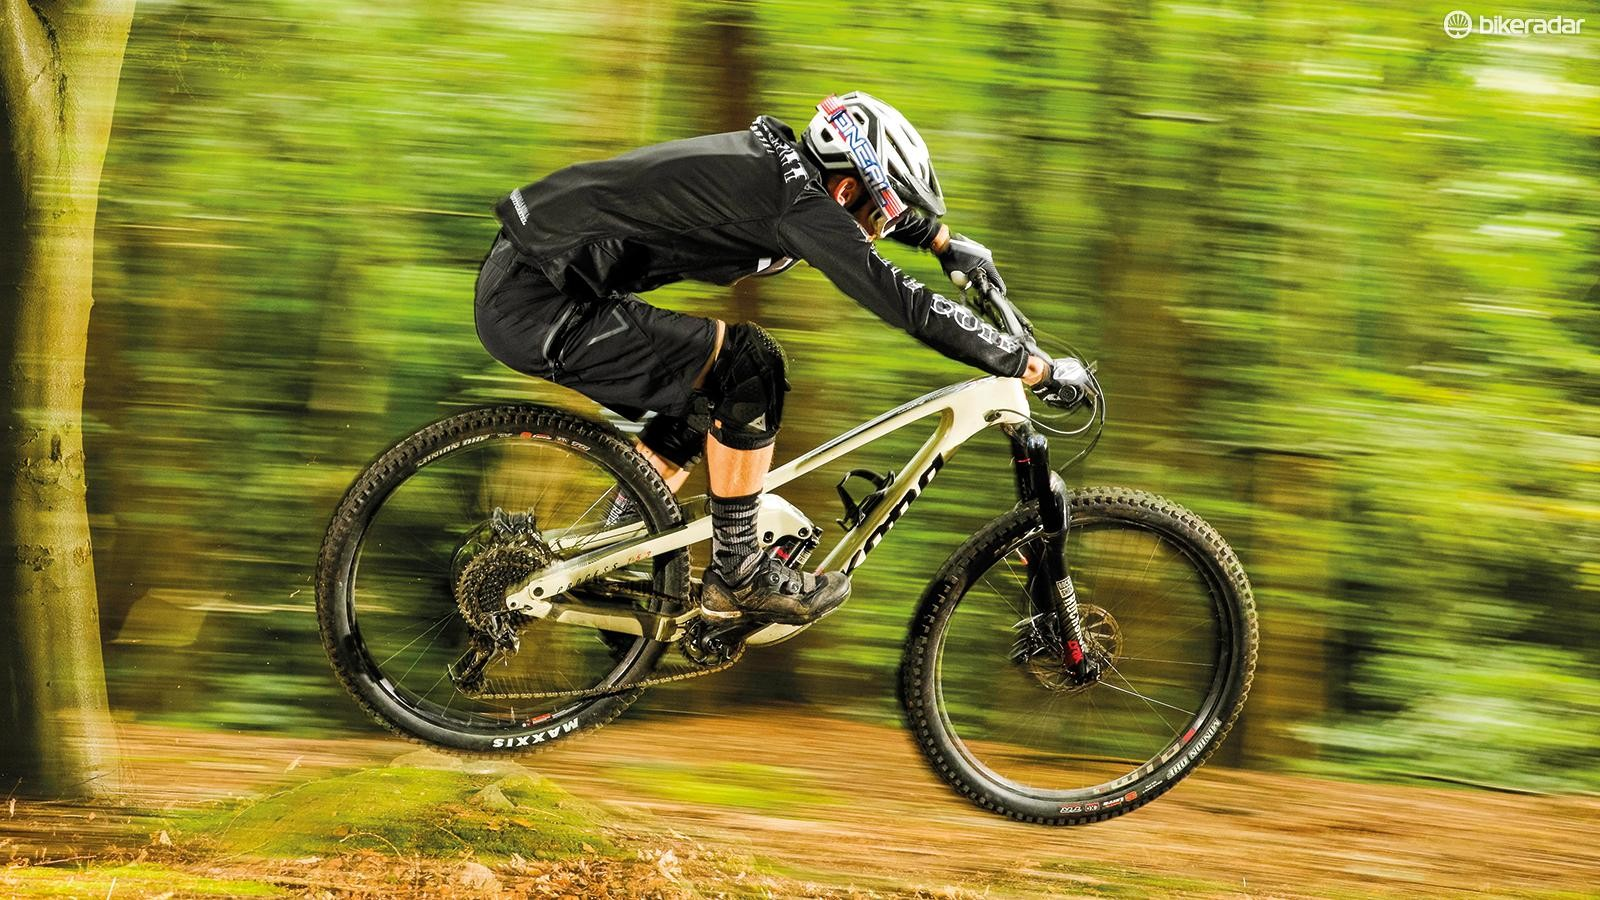 The Kona can be pushed and popped to drive speed out of berms and backslopes, and feels surprisingly alive, dynamic and trail happy for a 14.5kg 29er